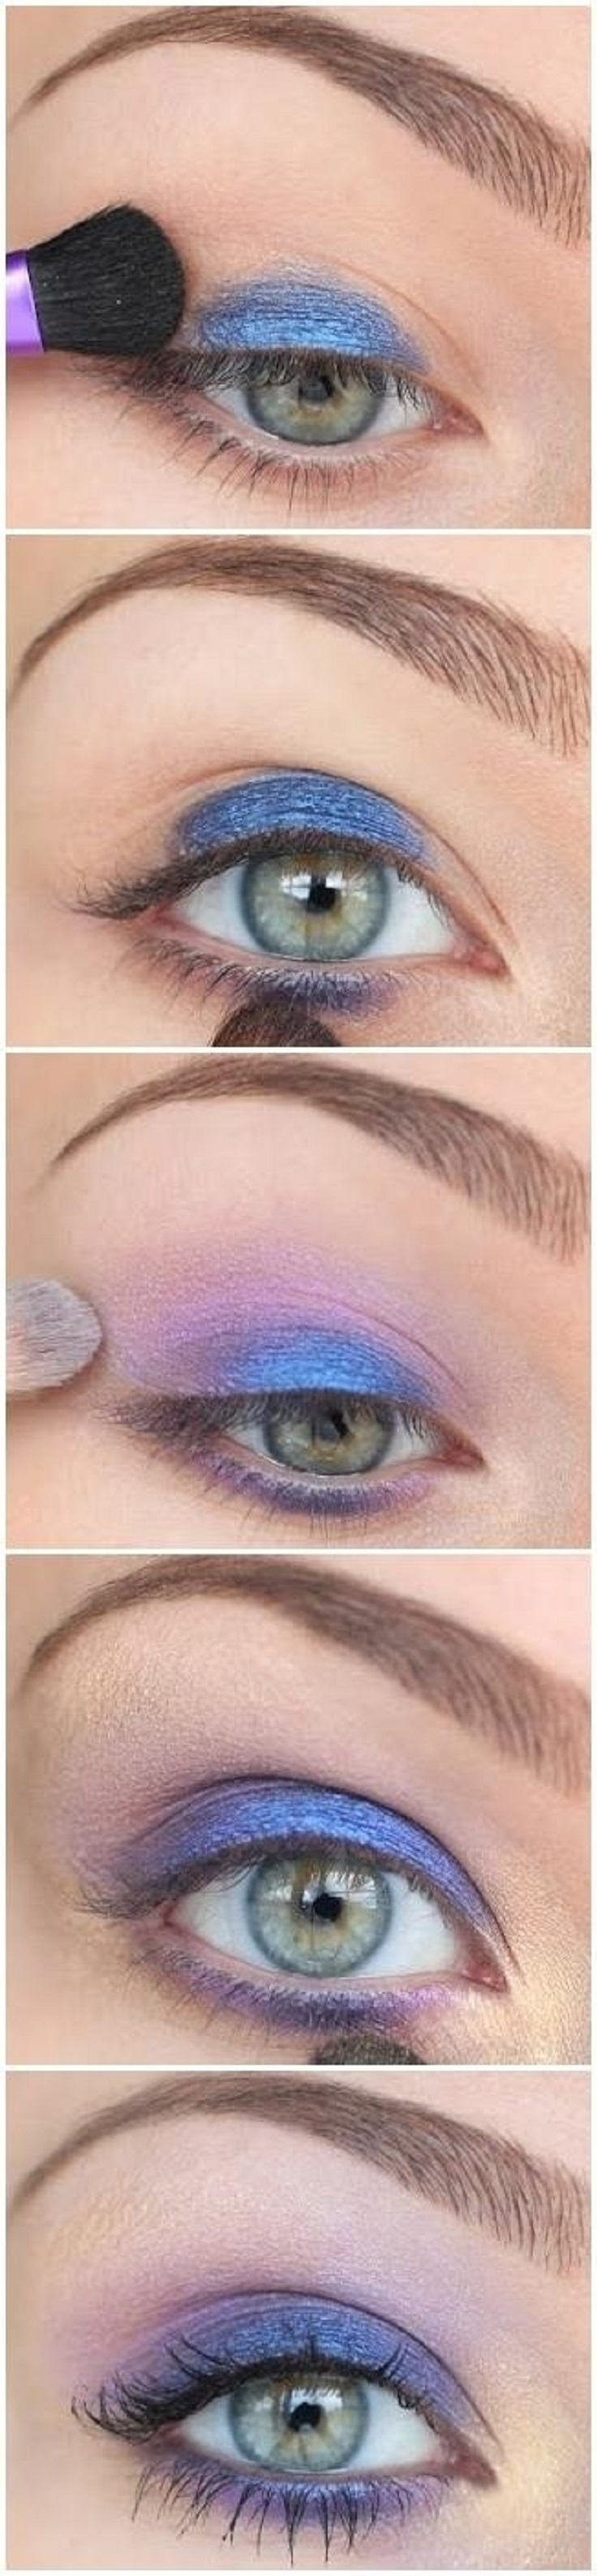 7 DIY Eye Makeup For Party